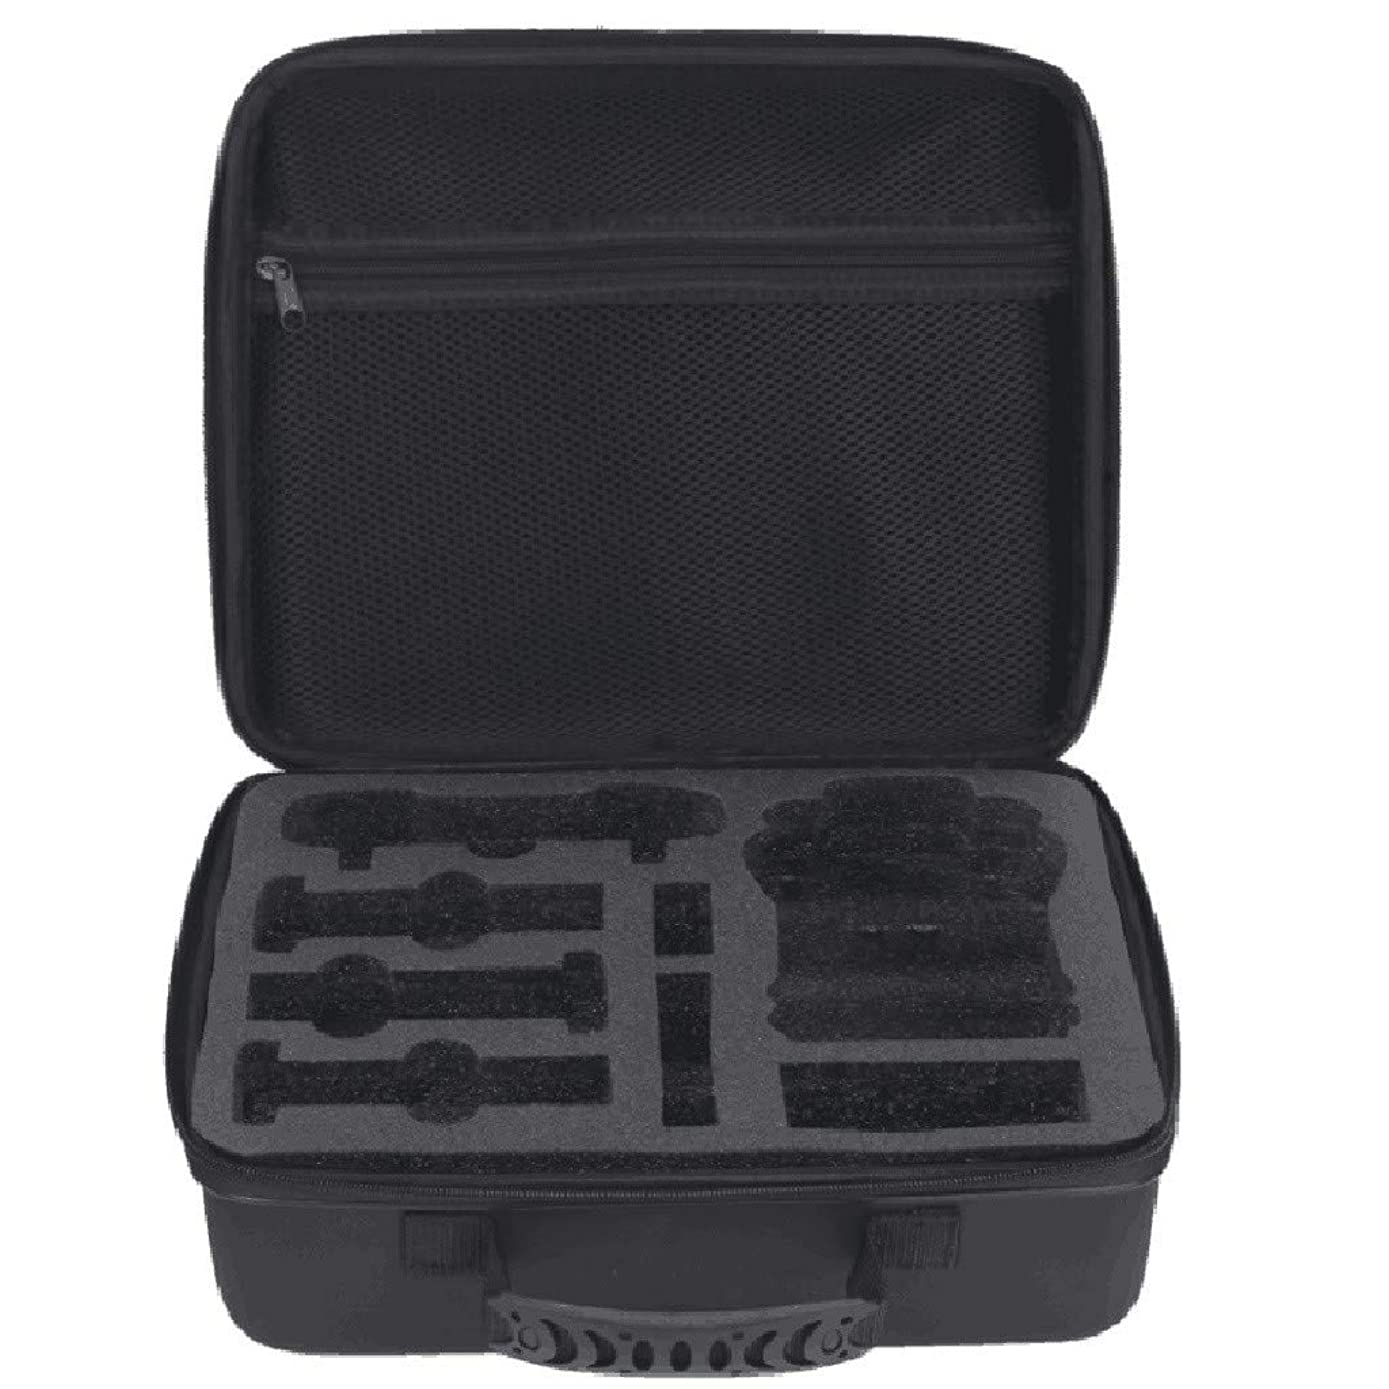 Fullwei Waterproof Portable Case Compatible with Hubsan Zino H117s - Perfect for Travel and Storage Organizer - Versatile EVA Interior and Precise Fit Cut - Complete Protection For Hubsan Zino (Black)